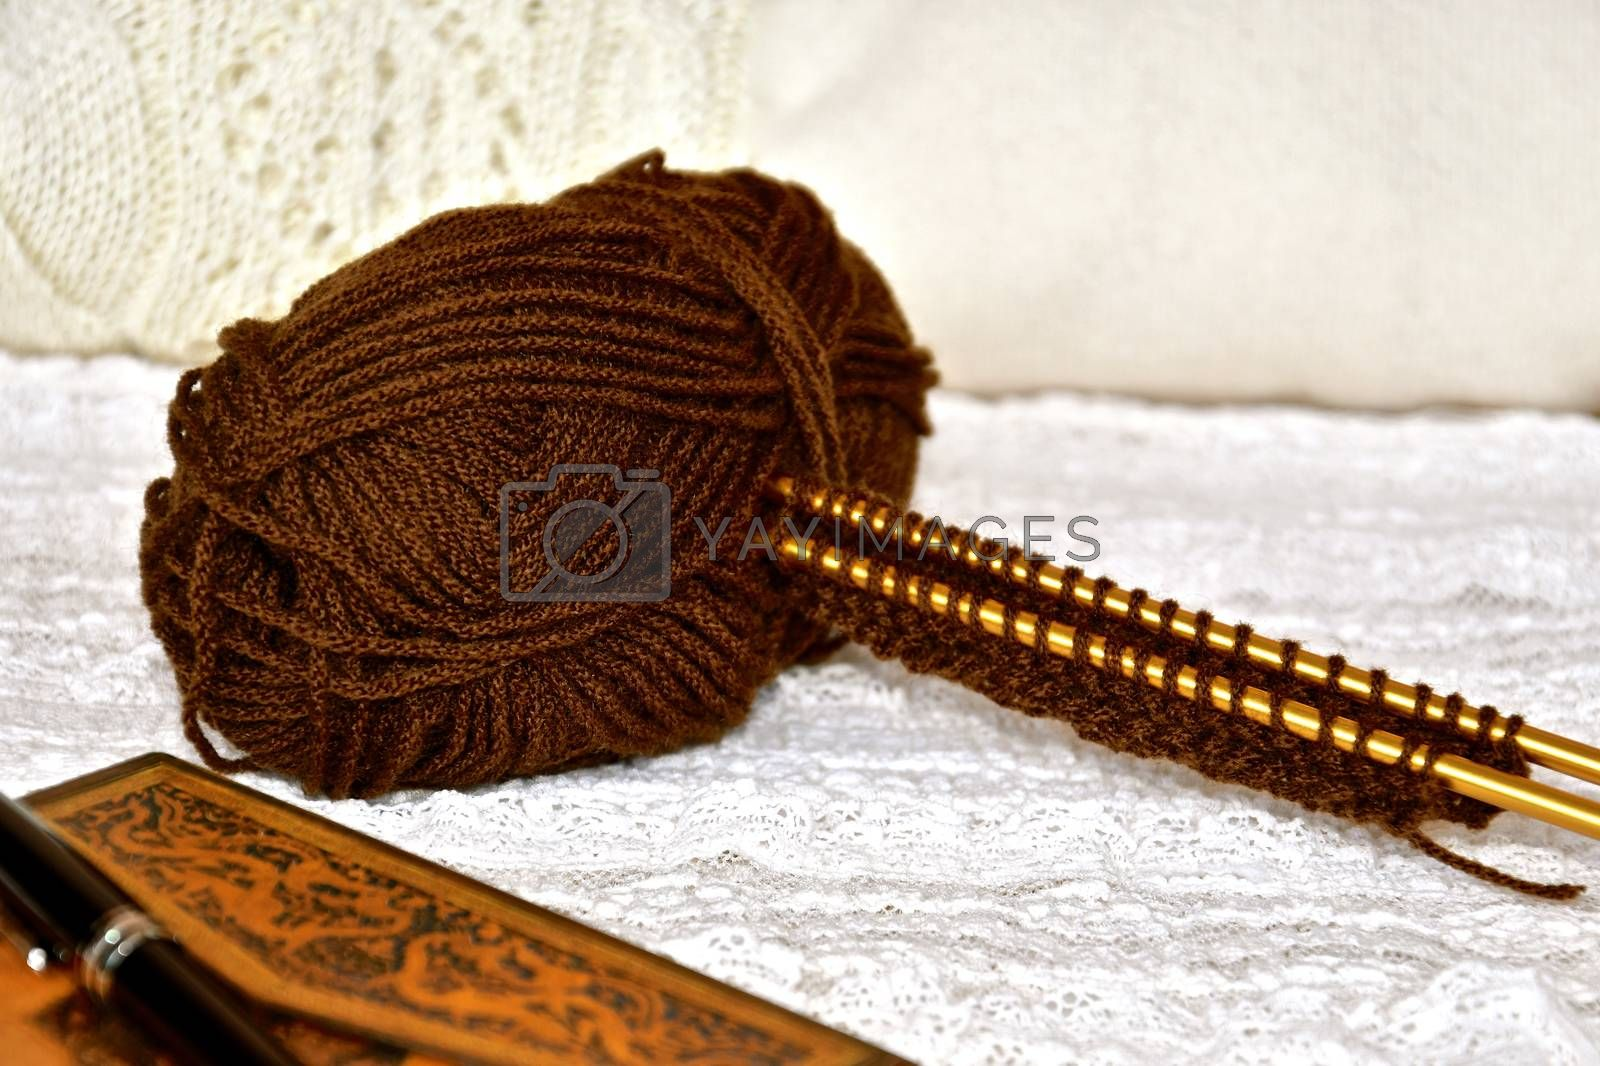 Concept of relaxation with knitting and journal in a still life composition with warm autumnal colours